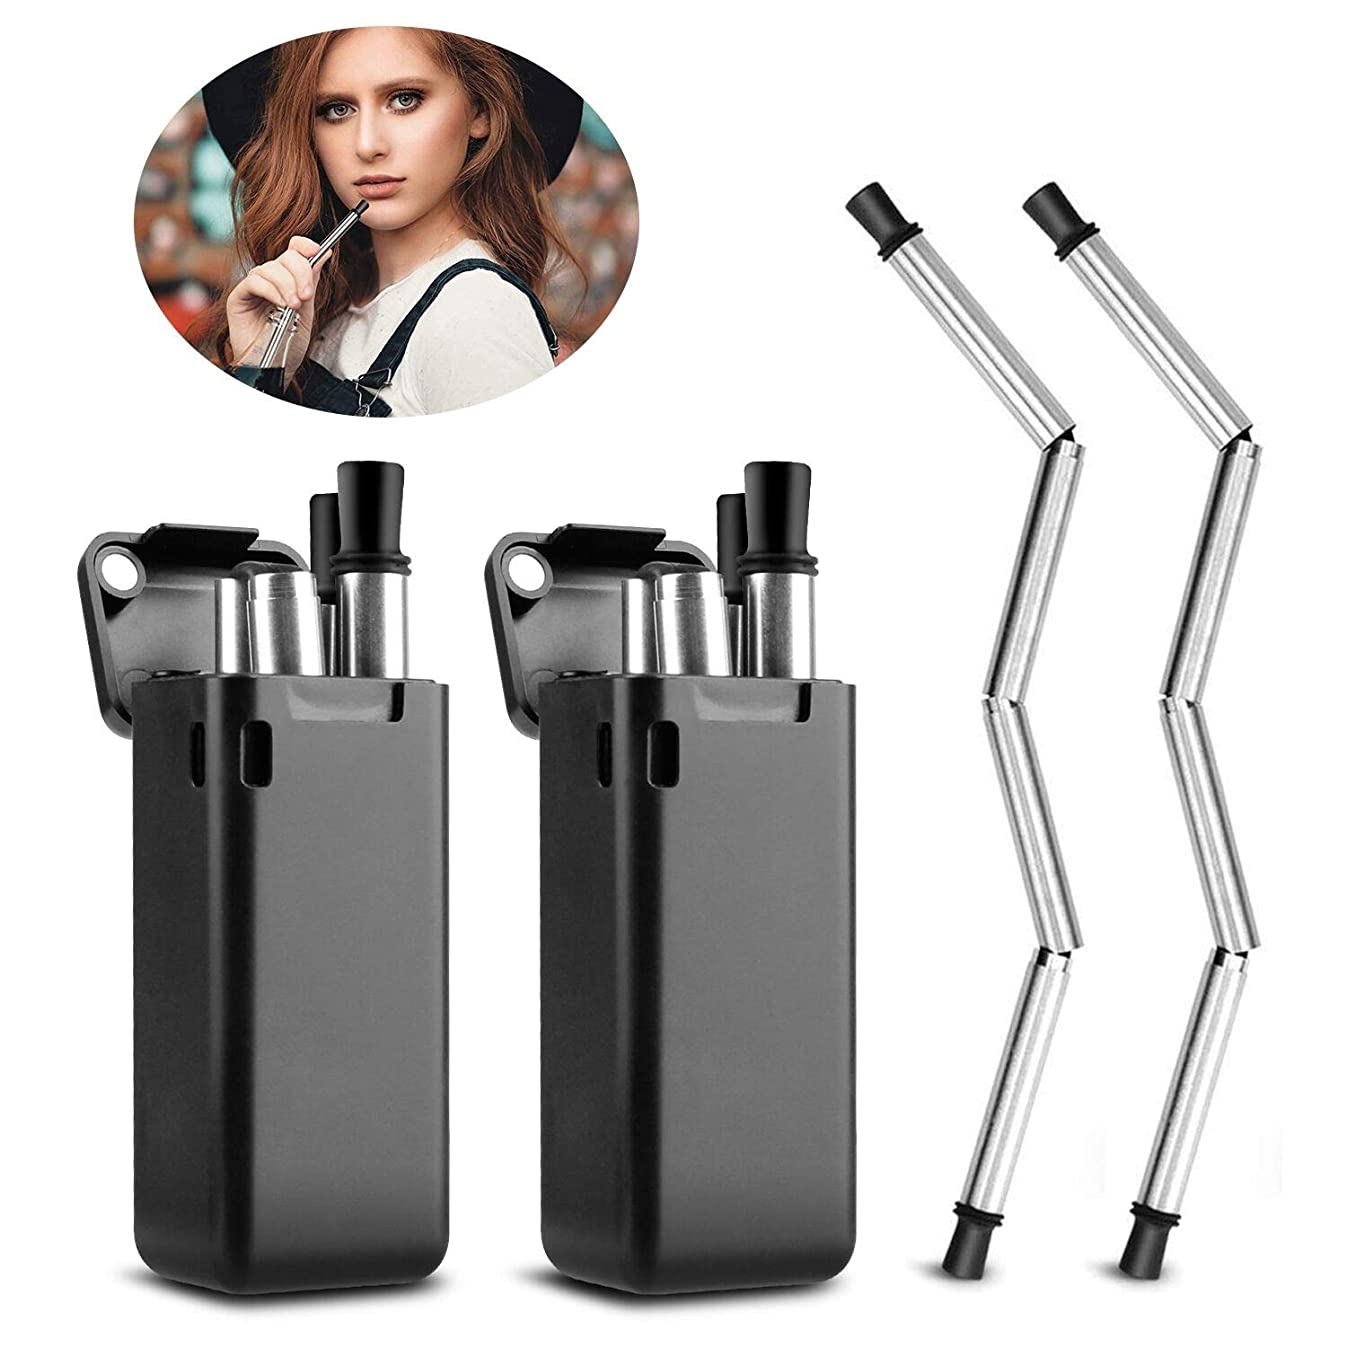 Collapsible?Straw?Reusable?Stainless?Steel,?KKTICK?Food-Grade?Portable?Folding?Drinking?Straws,?Metal?Straws?with?Case?and Cleaning?Brush?for?Travel,?Household,?Outdoor?-?2?Pack?(Black)